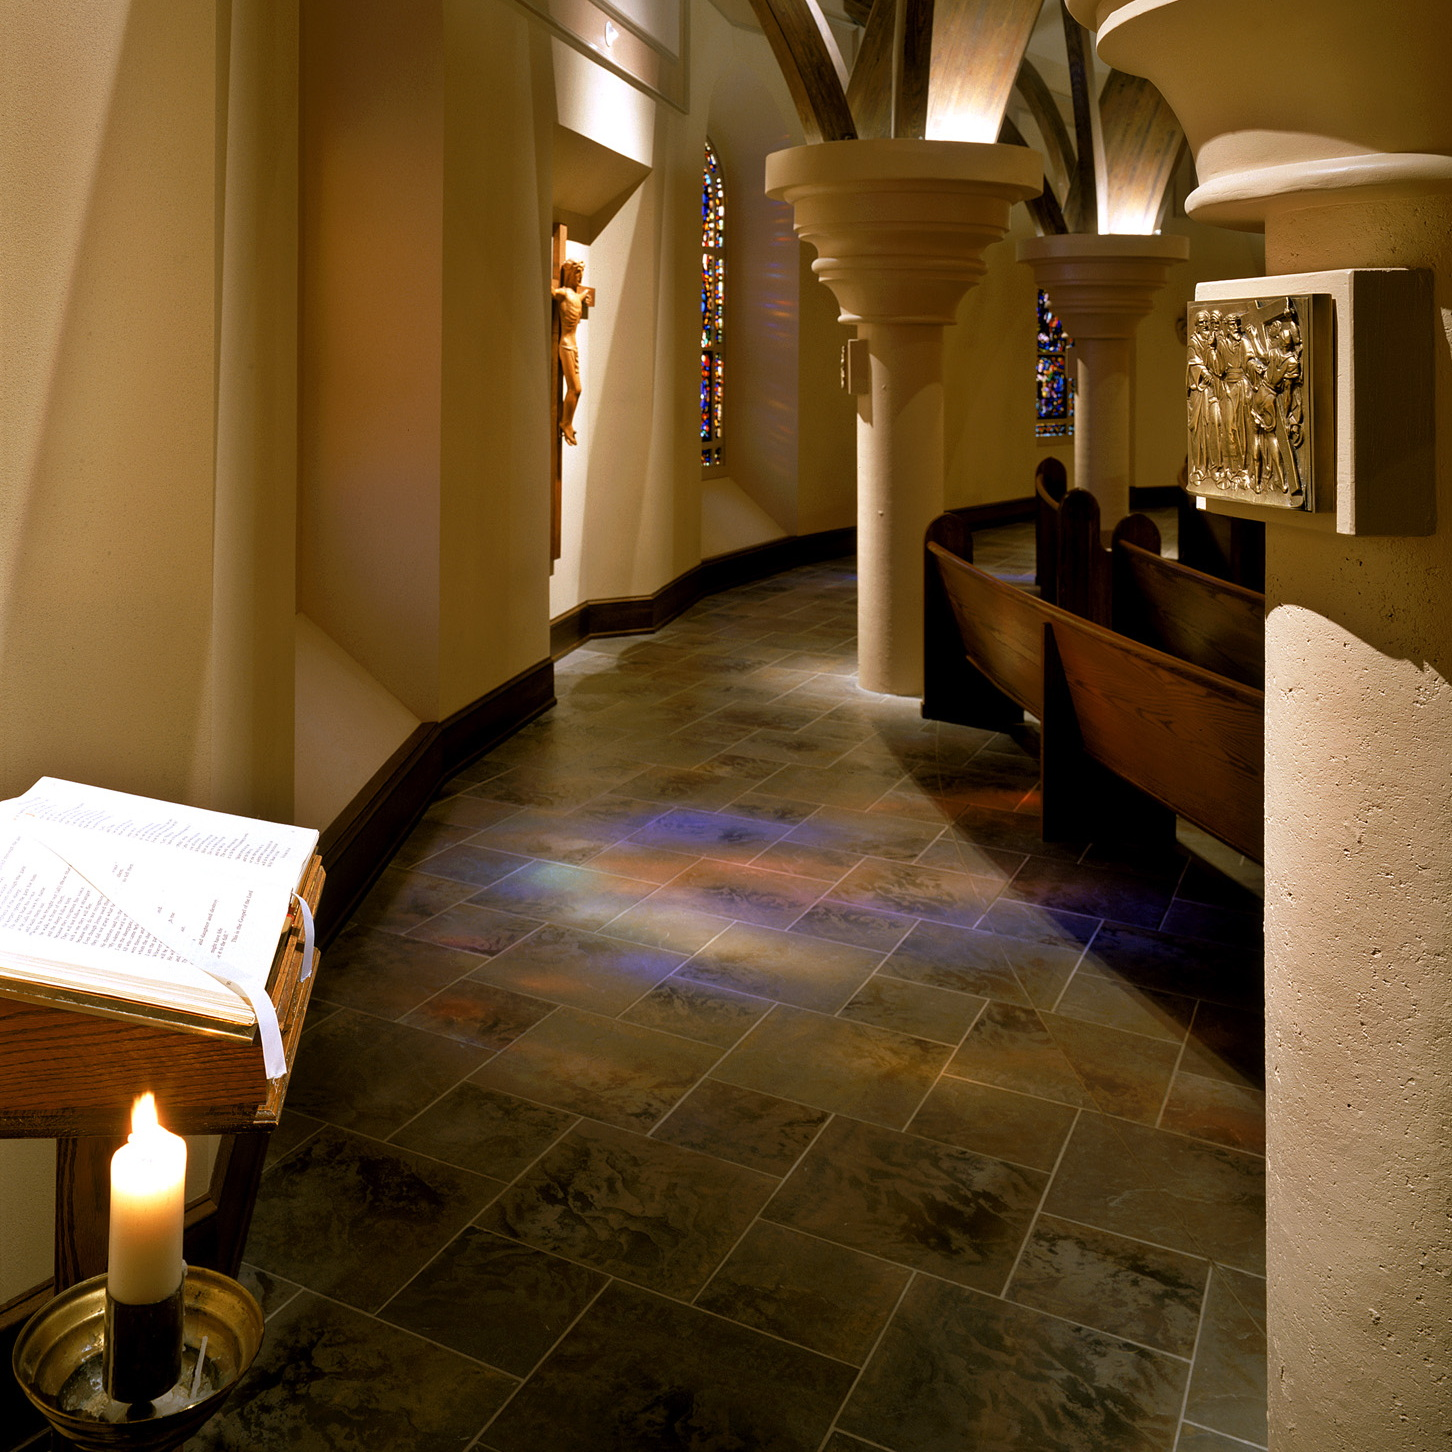 Church renovations, Catholic churches, new churches, chapels, worship spaces, liturgical design